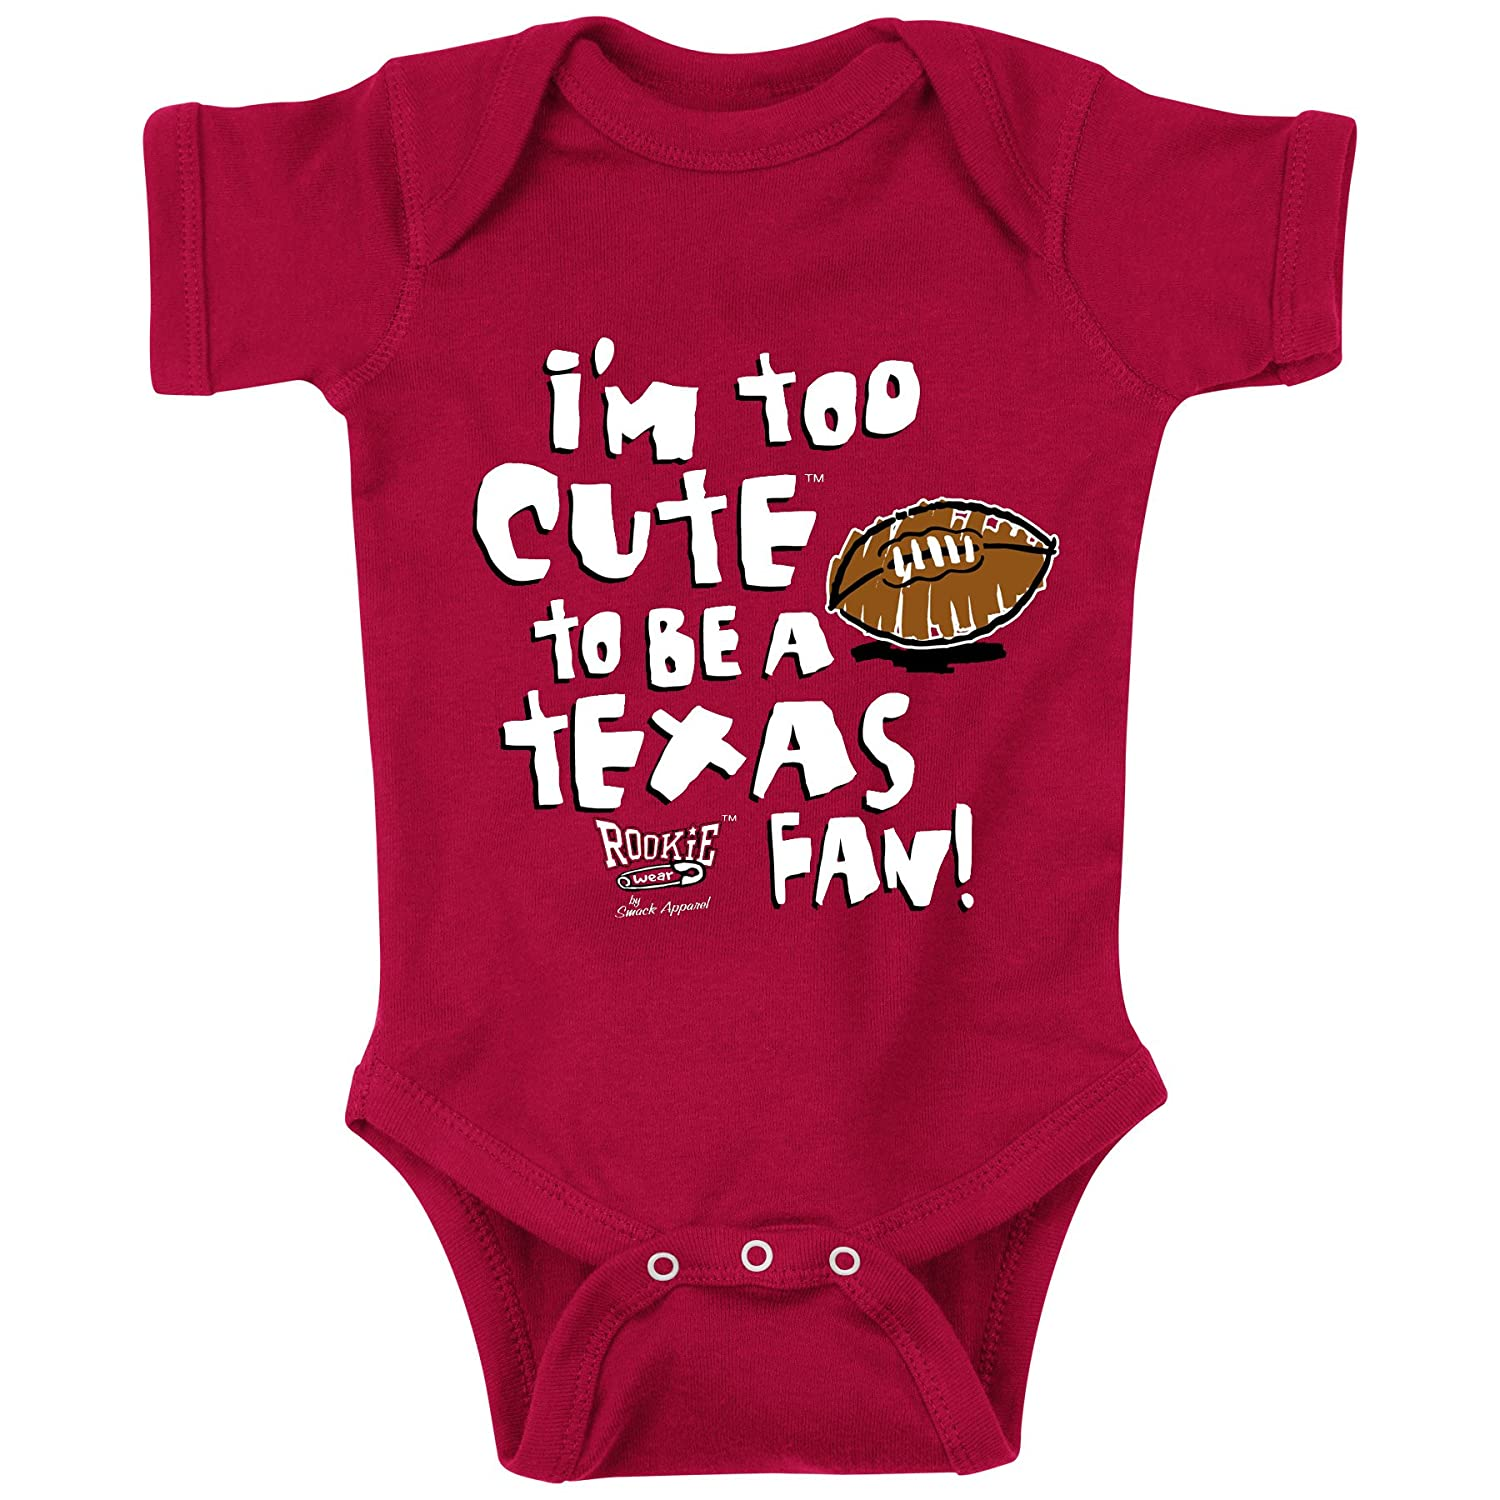 7T Oklahoma Sooners Fans Too Cute to Be a Longhorns Fan Cardinal Onesie and Toddler Tee